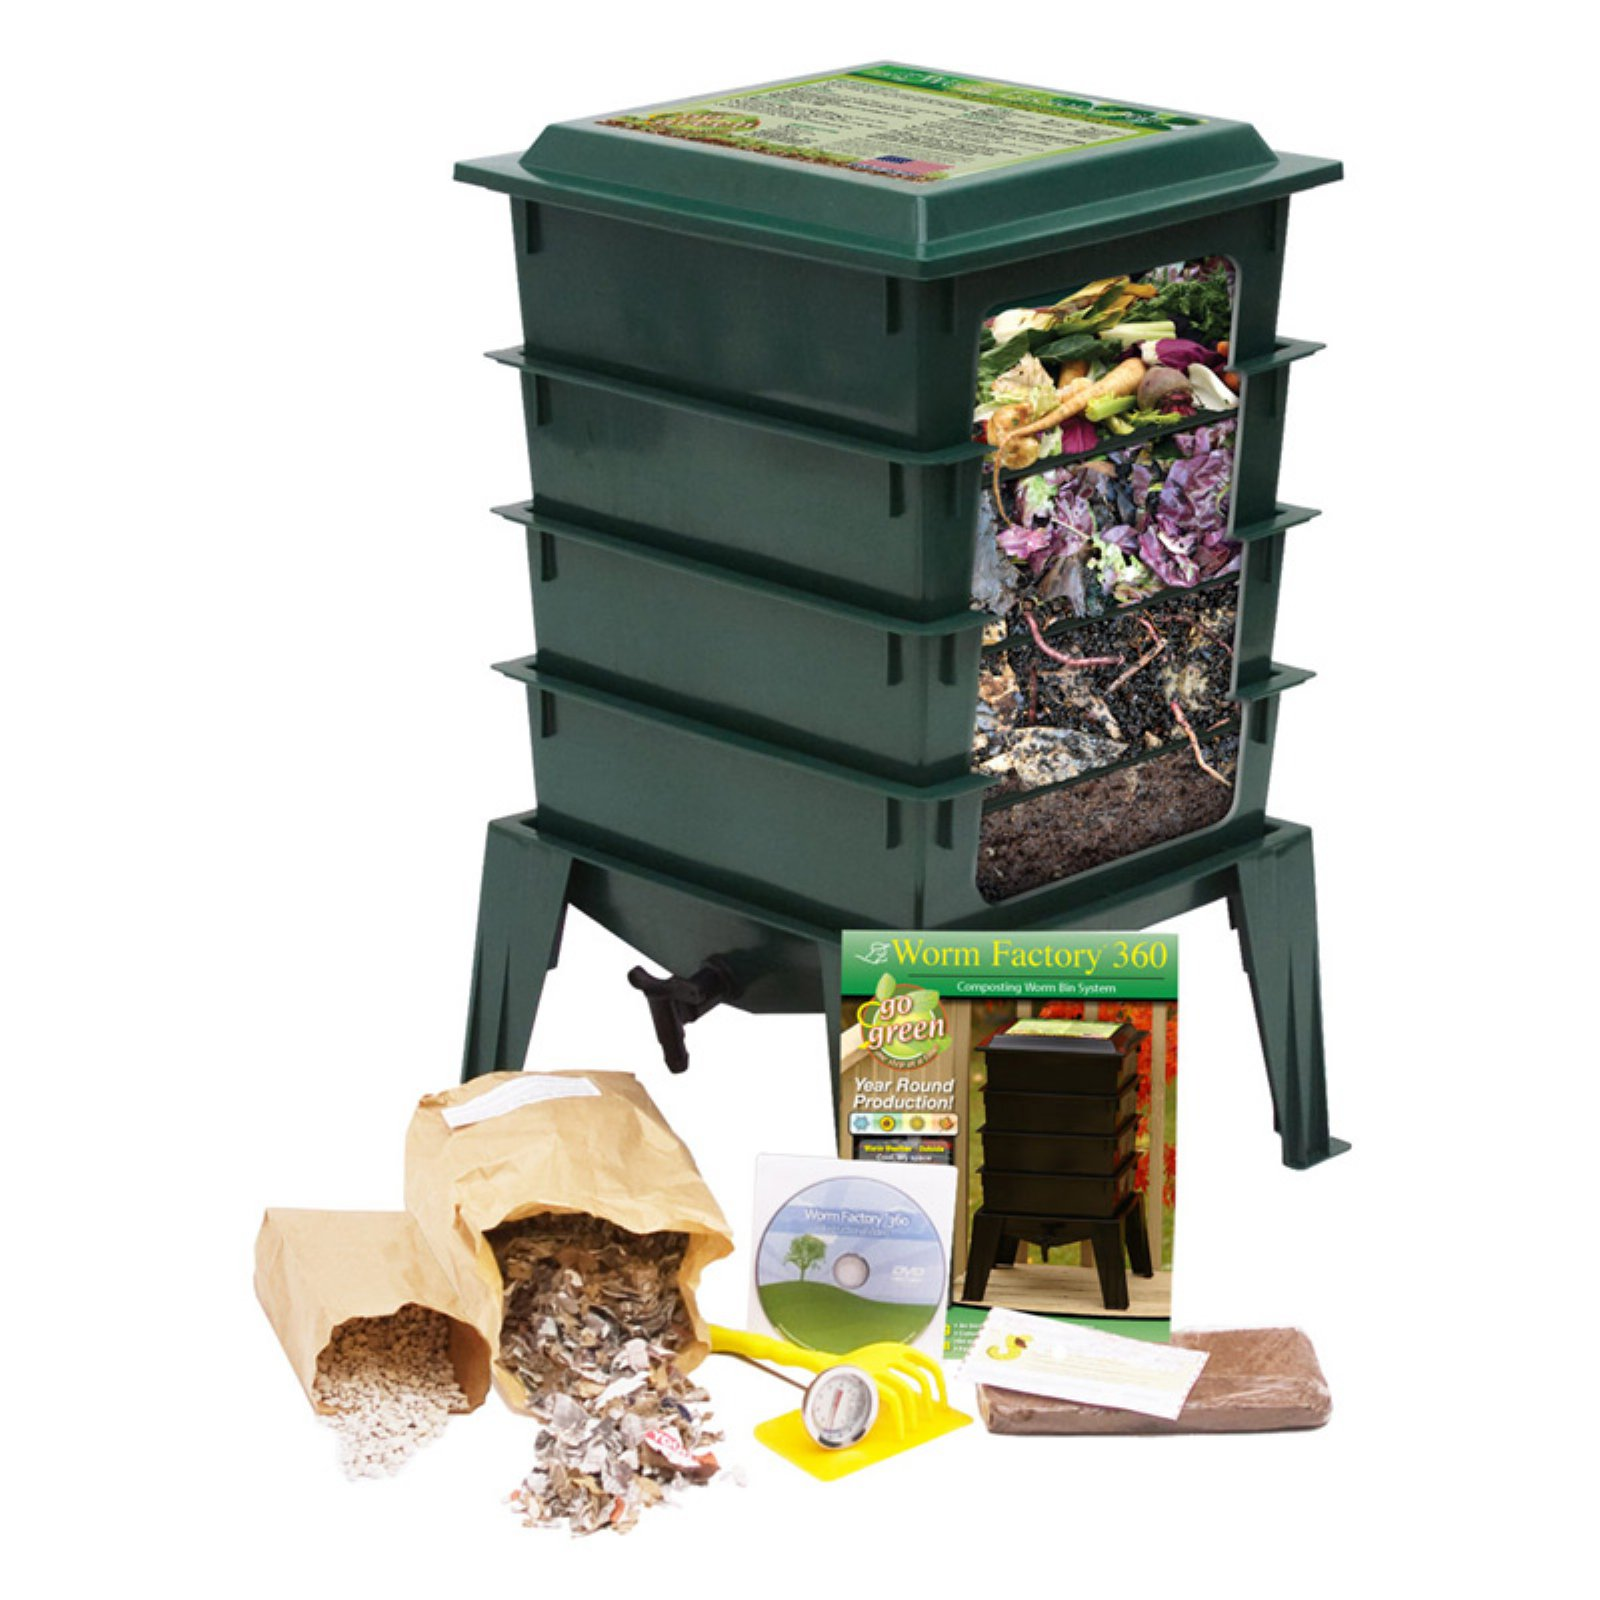 The Worm Factory® 360 Recycled Plastic Worm Composter - Green